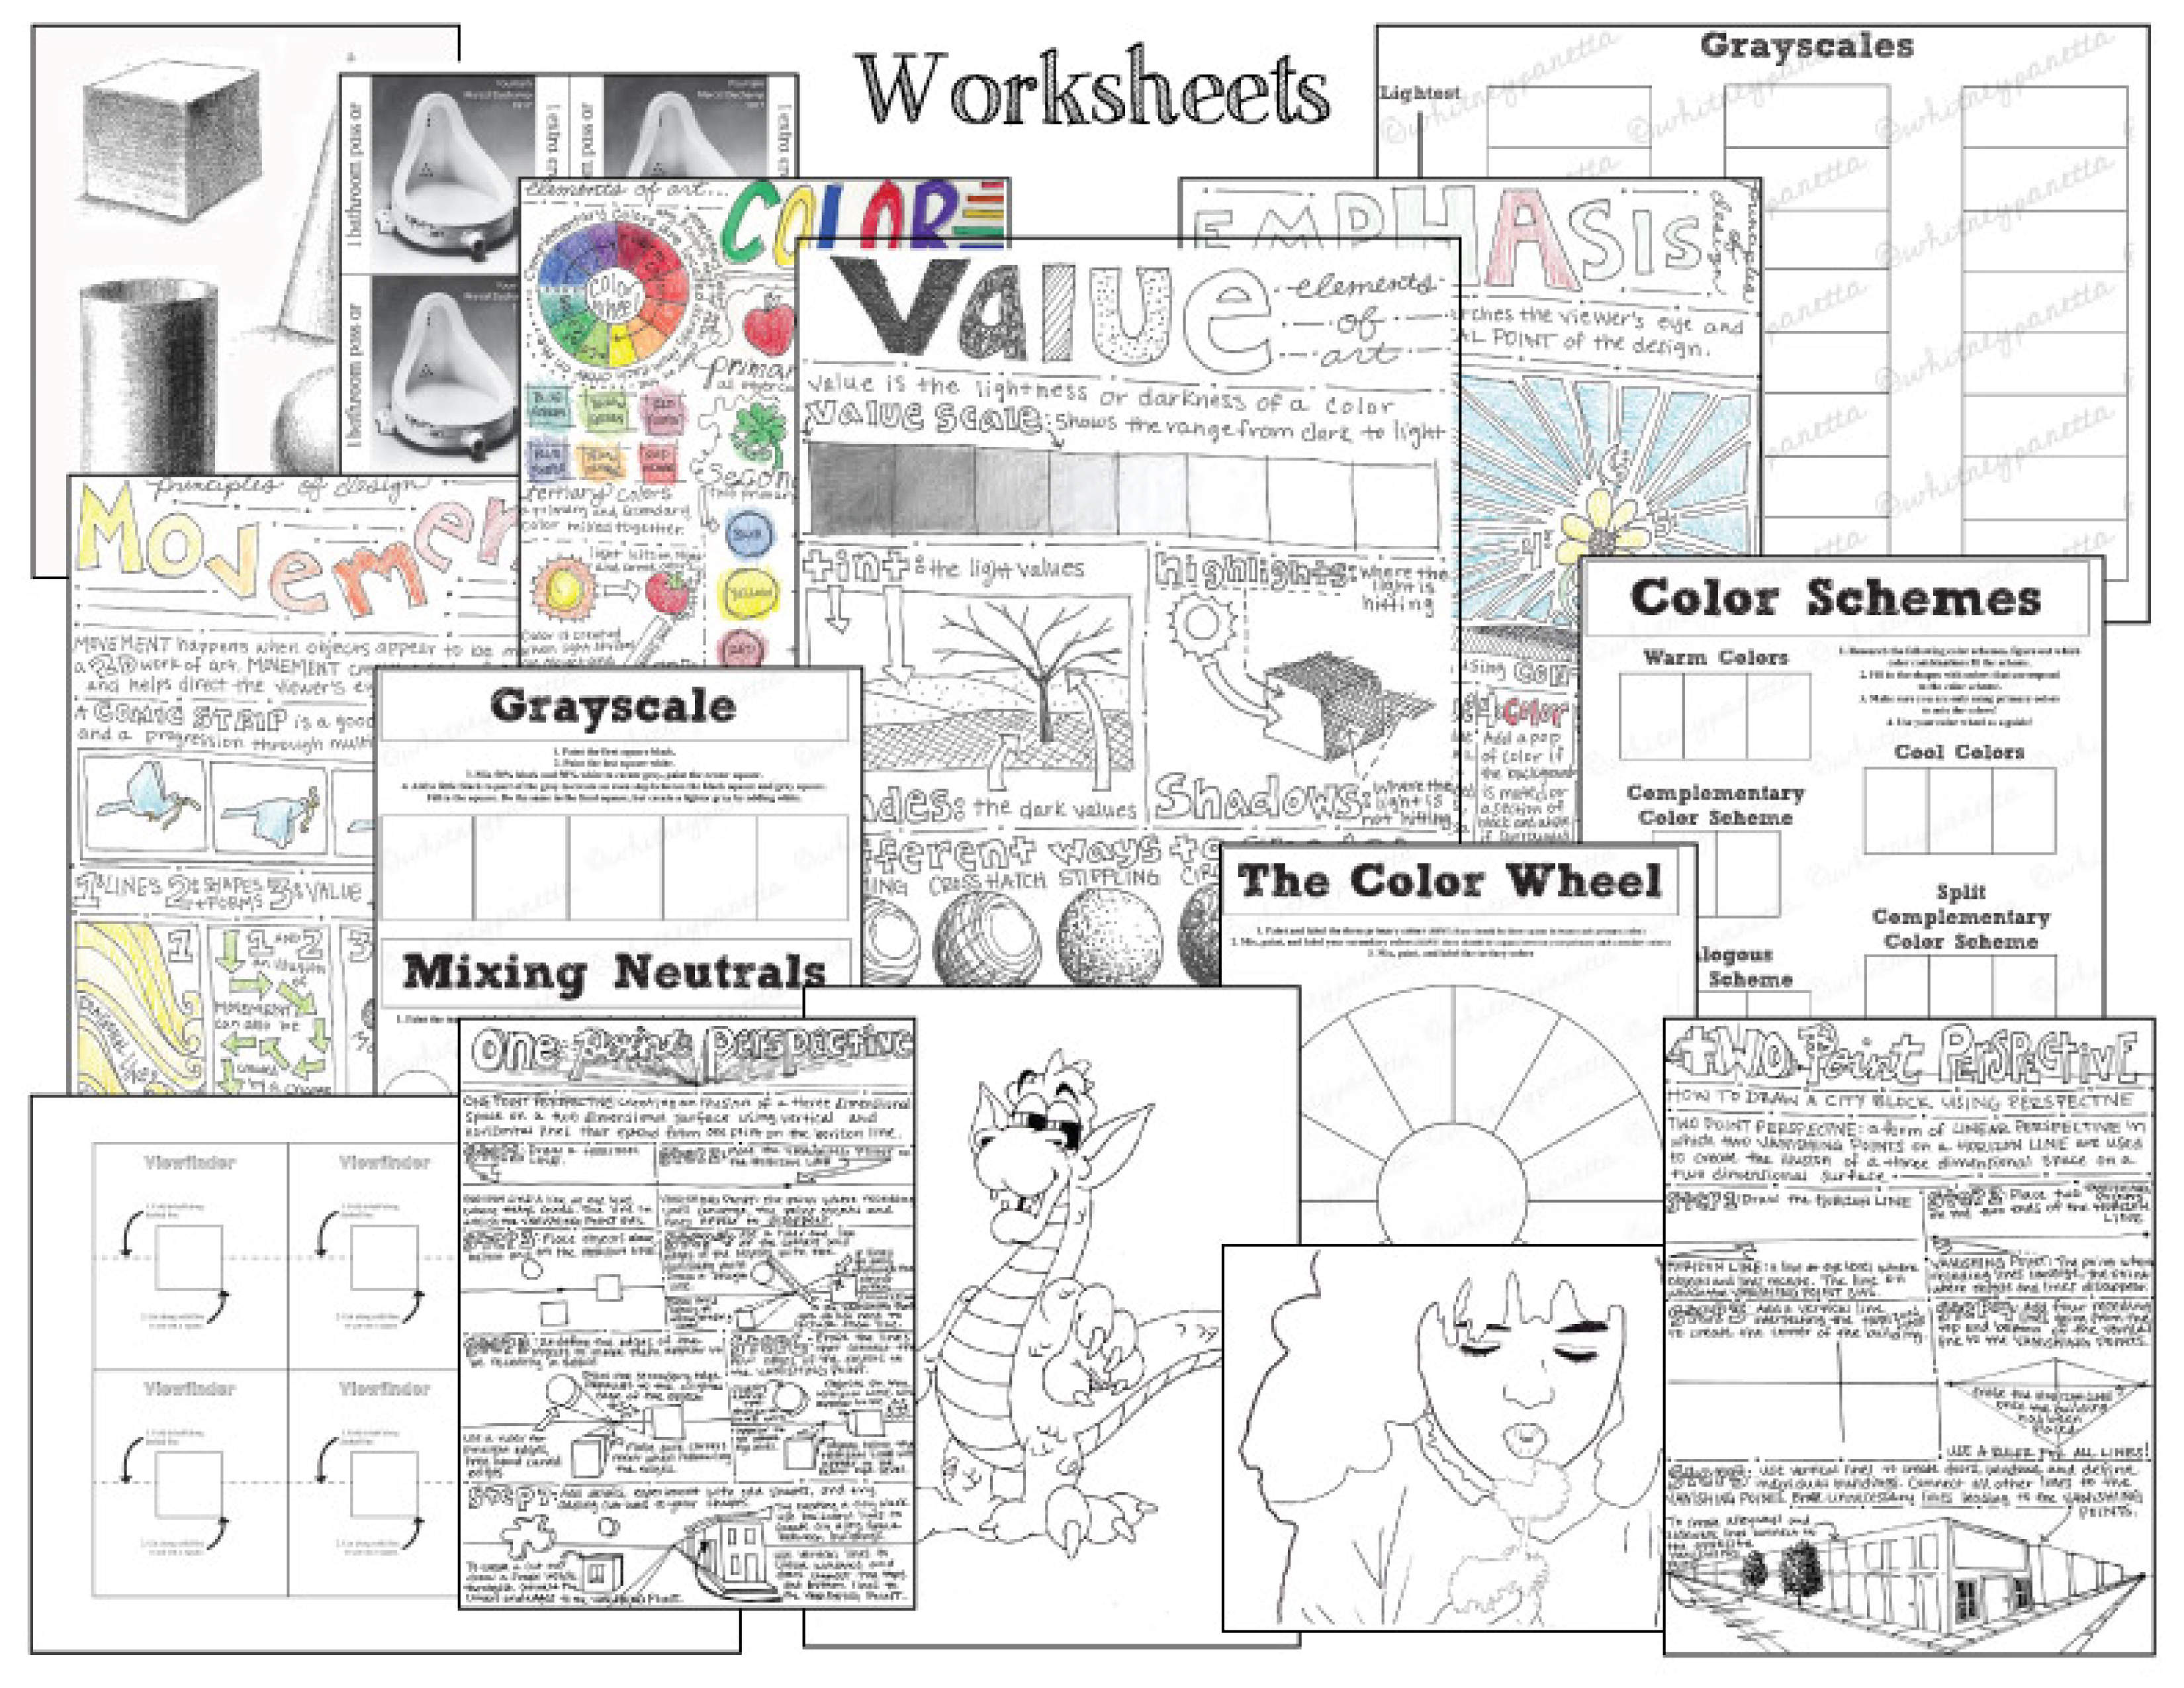 Drawing Lines Between Html Elements : Free worksheet elements and principles of art